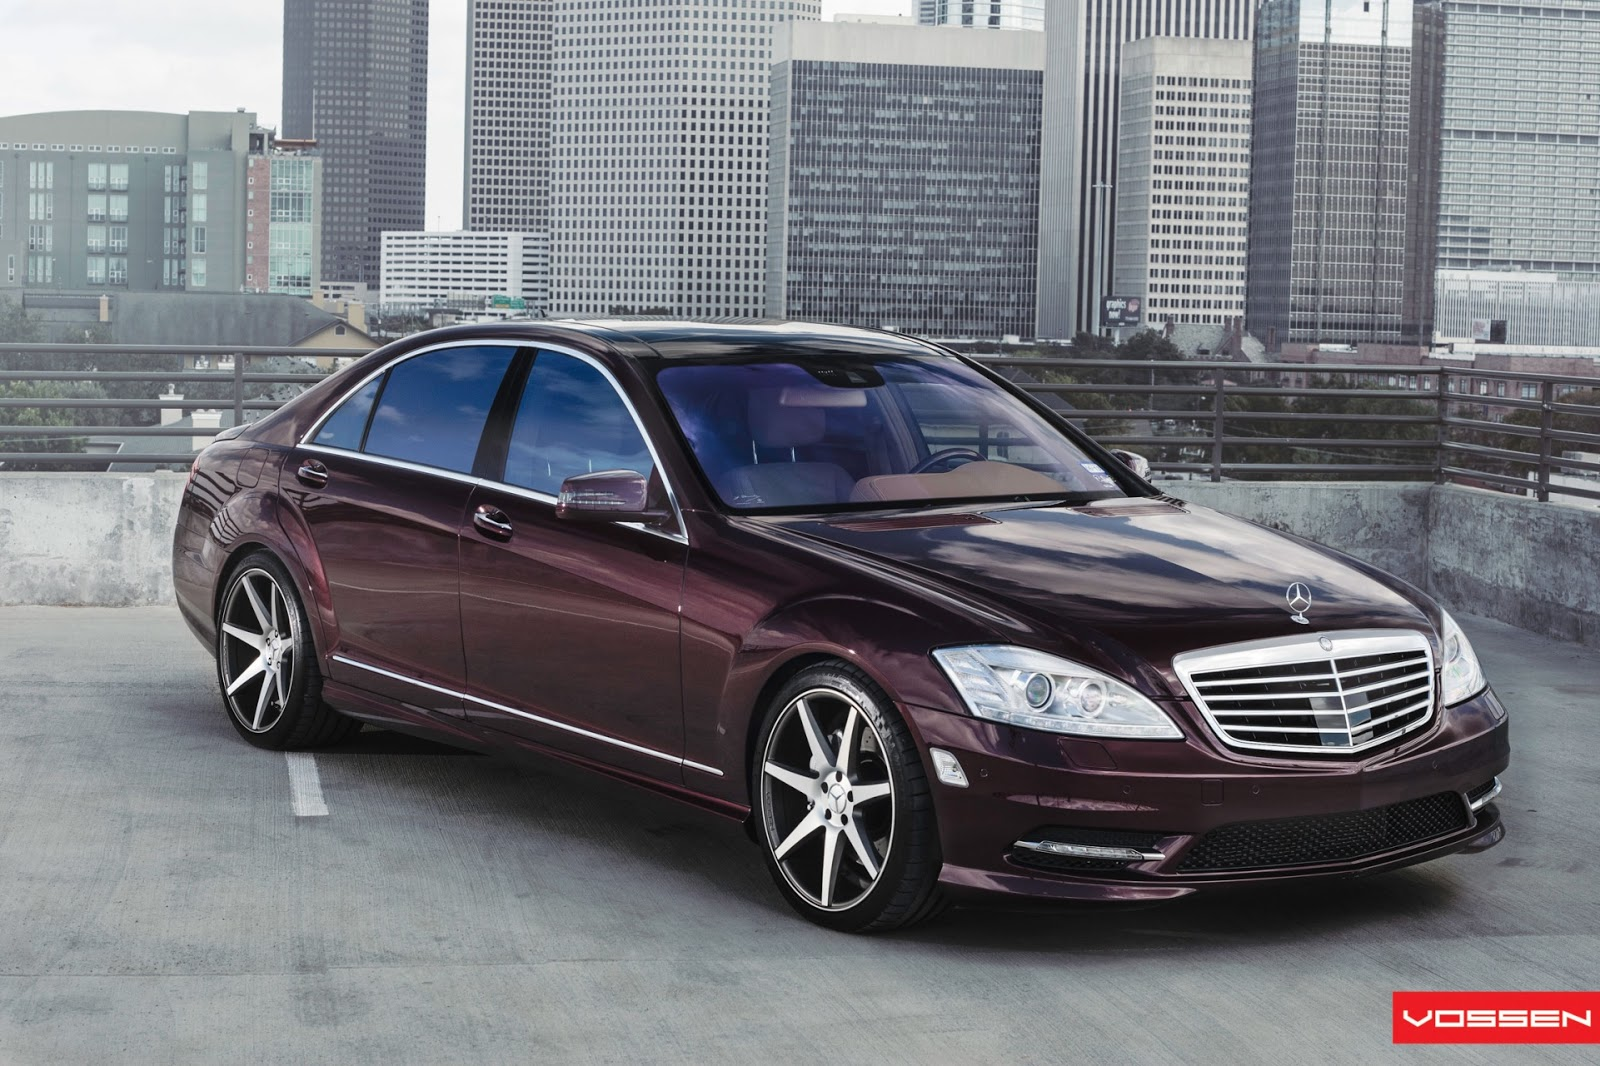 all tuning cars nz 2012 vossen wheels mercedes benz s550. Black Bedroom Furniture Sets. Home Design Ideas